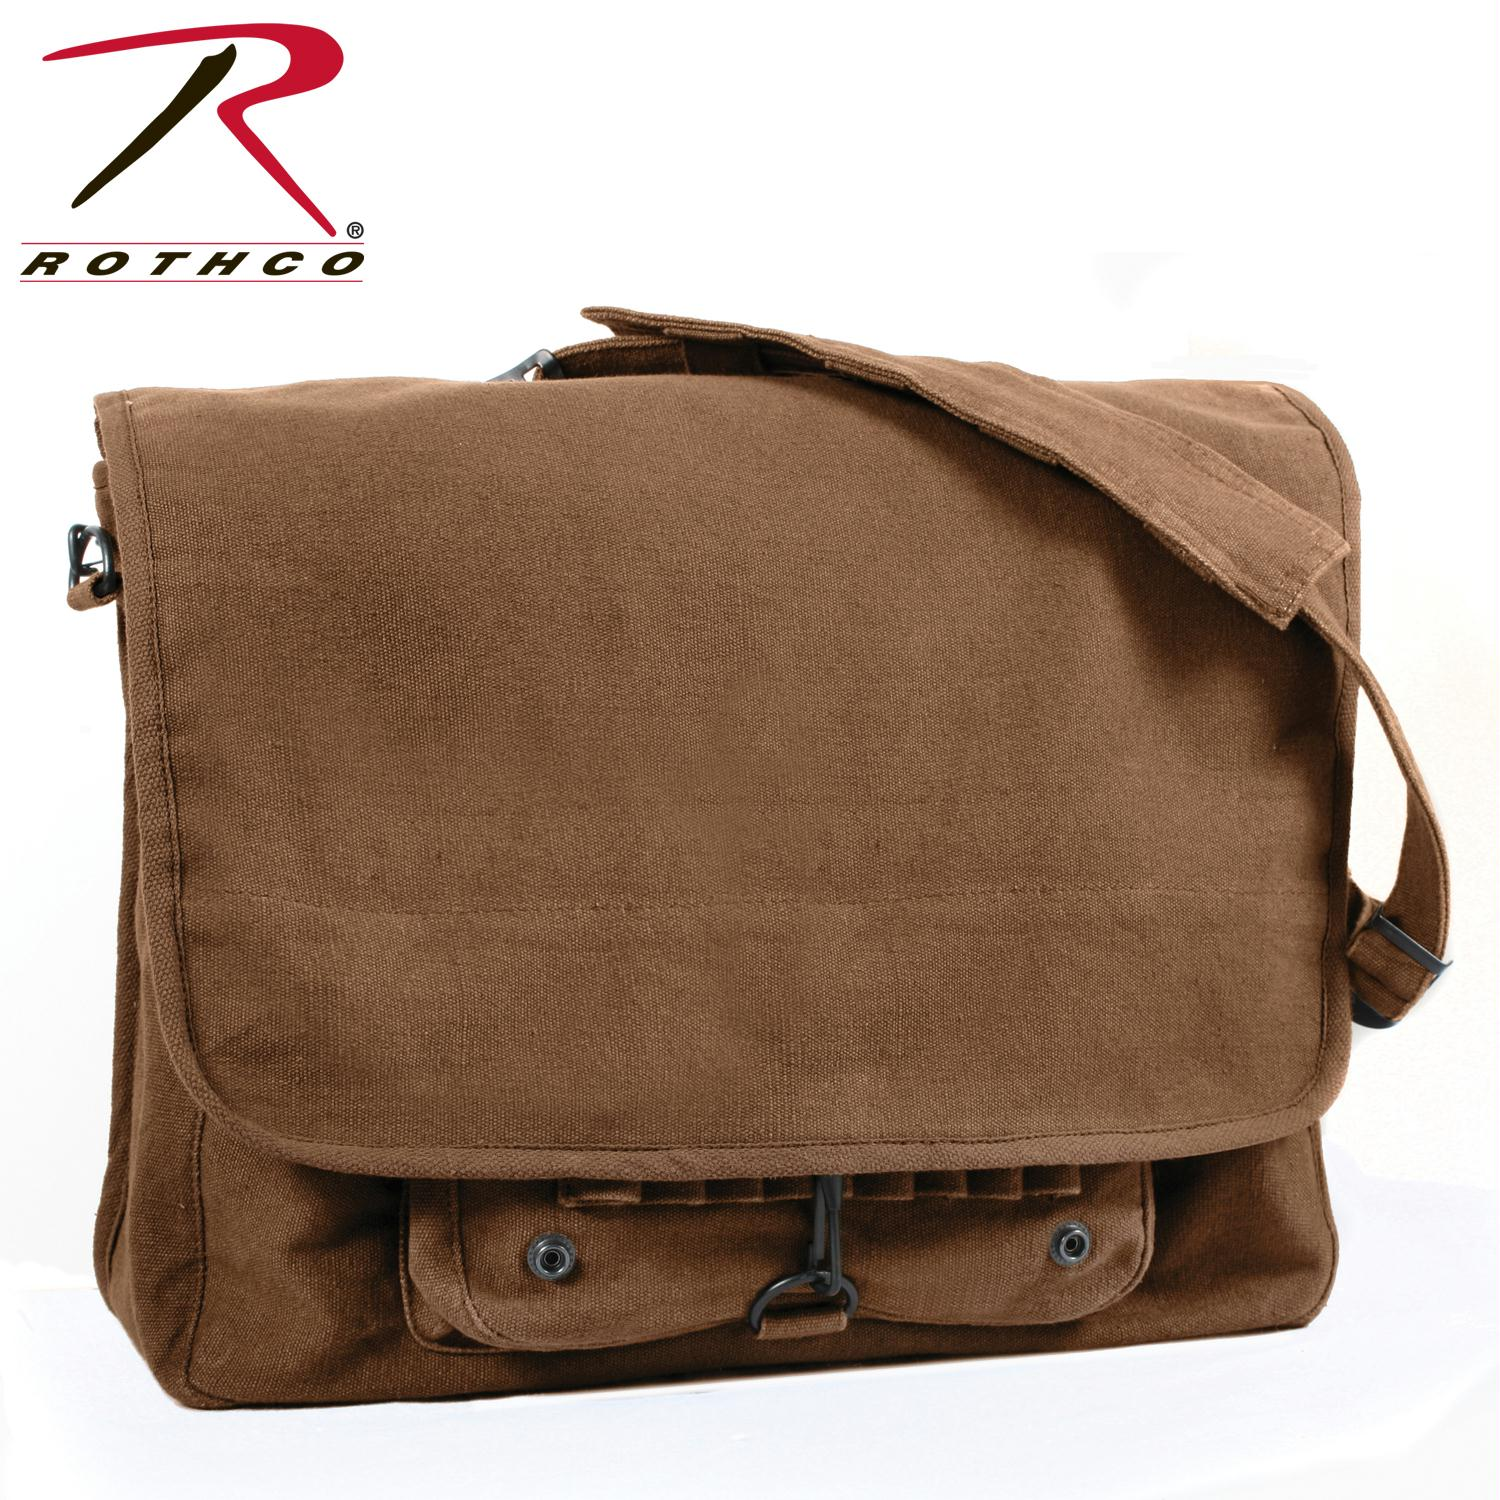 Rothco Vintage Canvas Paratrooper Bag - Brown